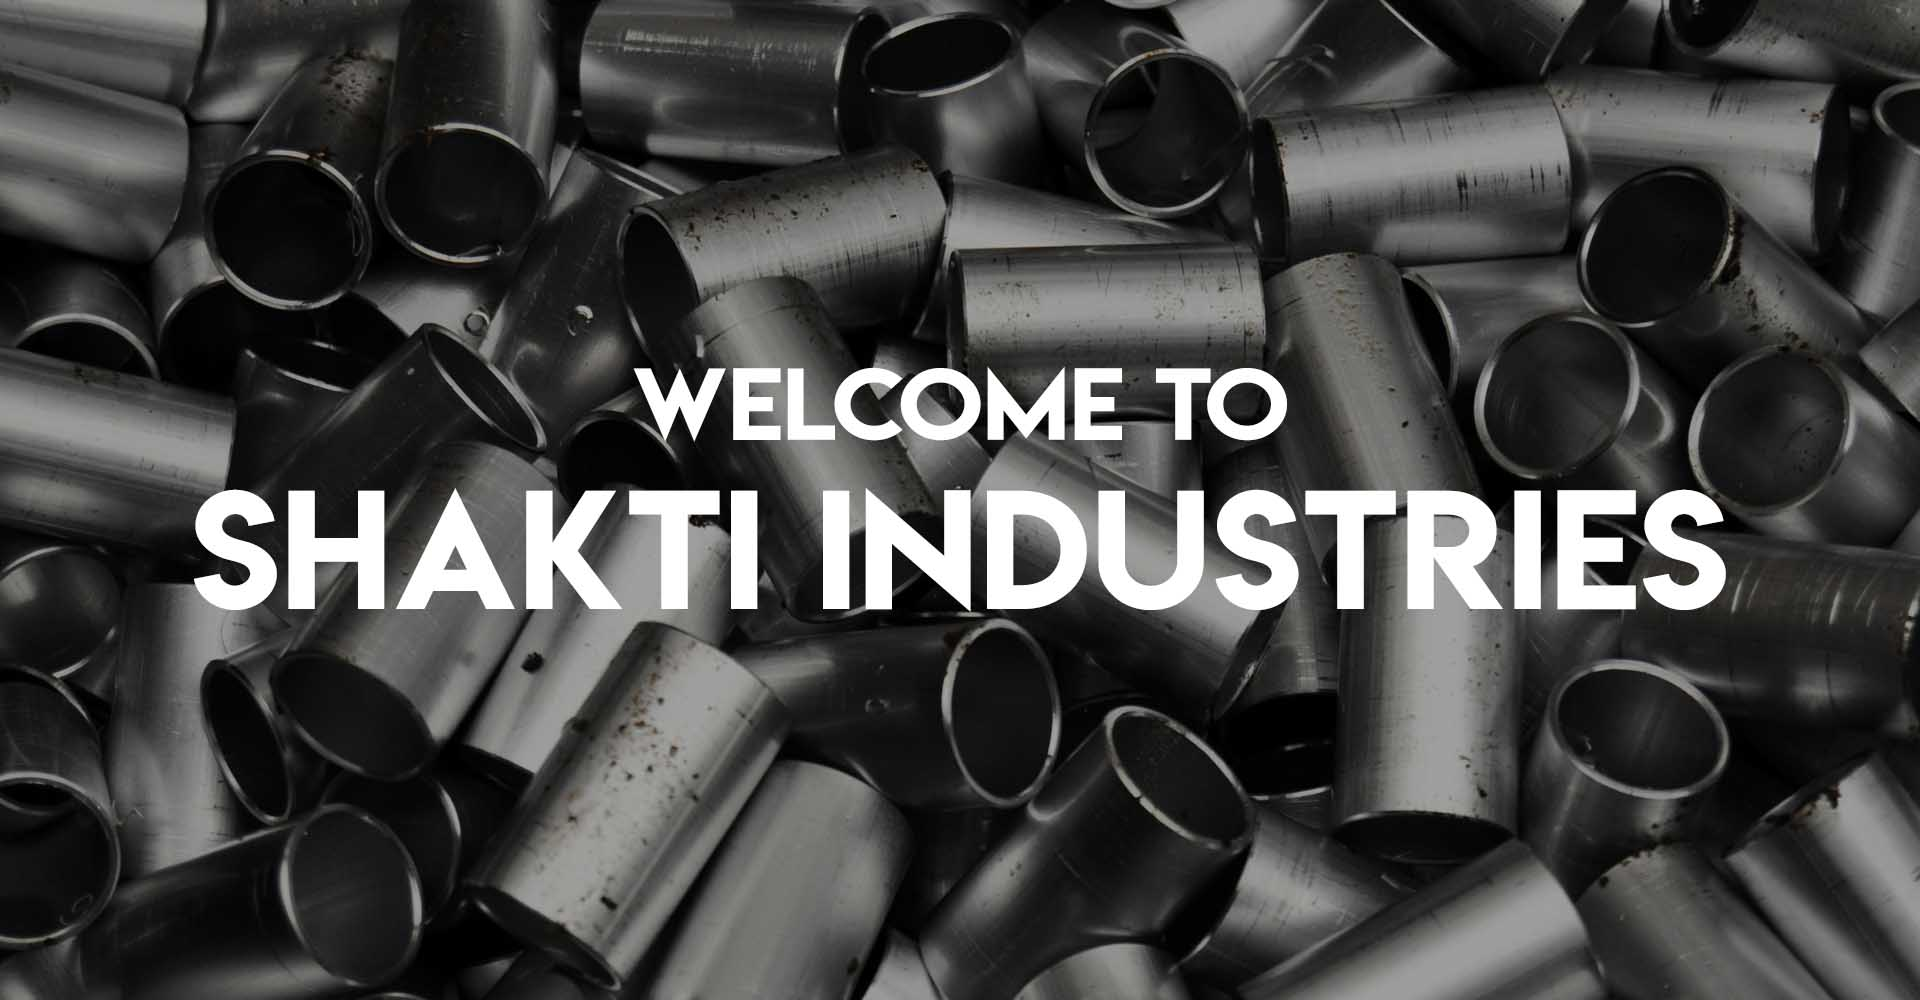 Welcome to Shakti Industries